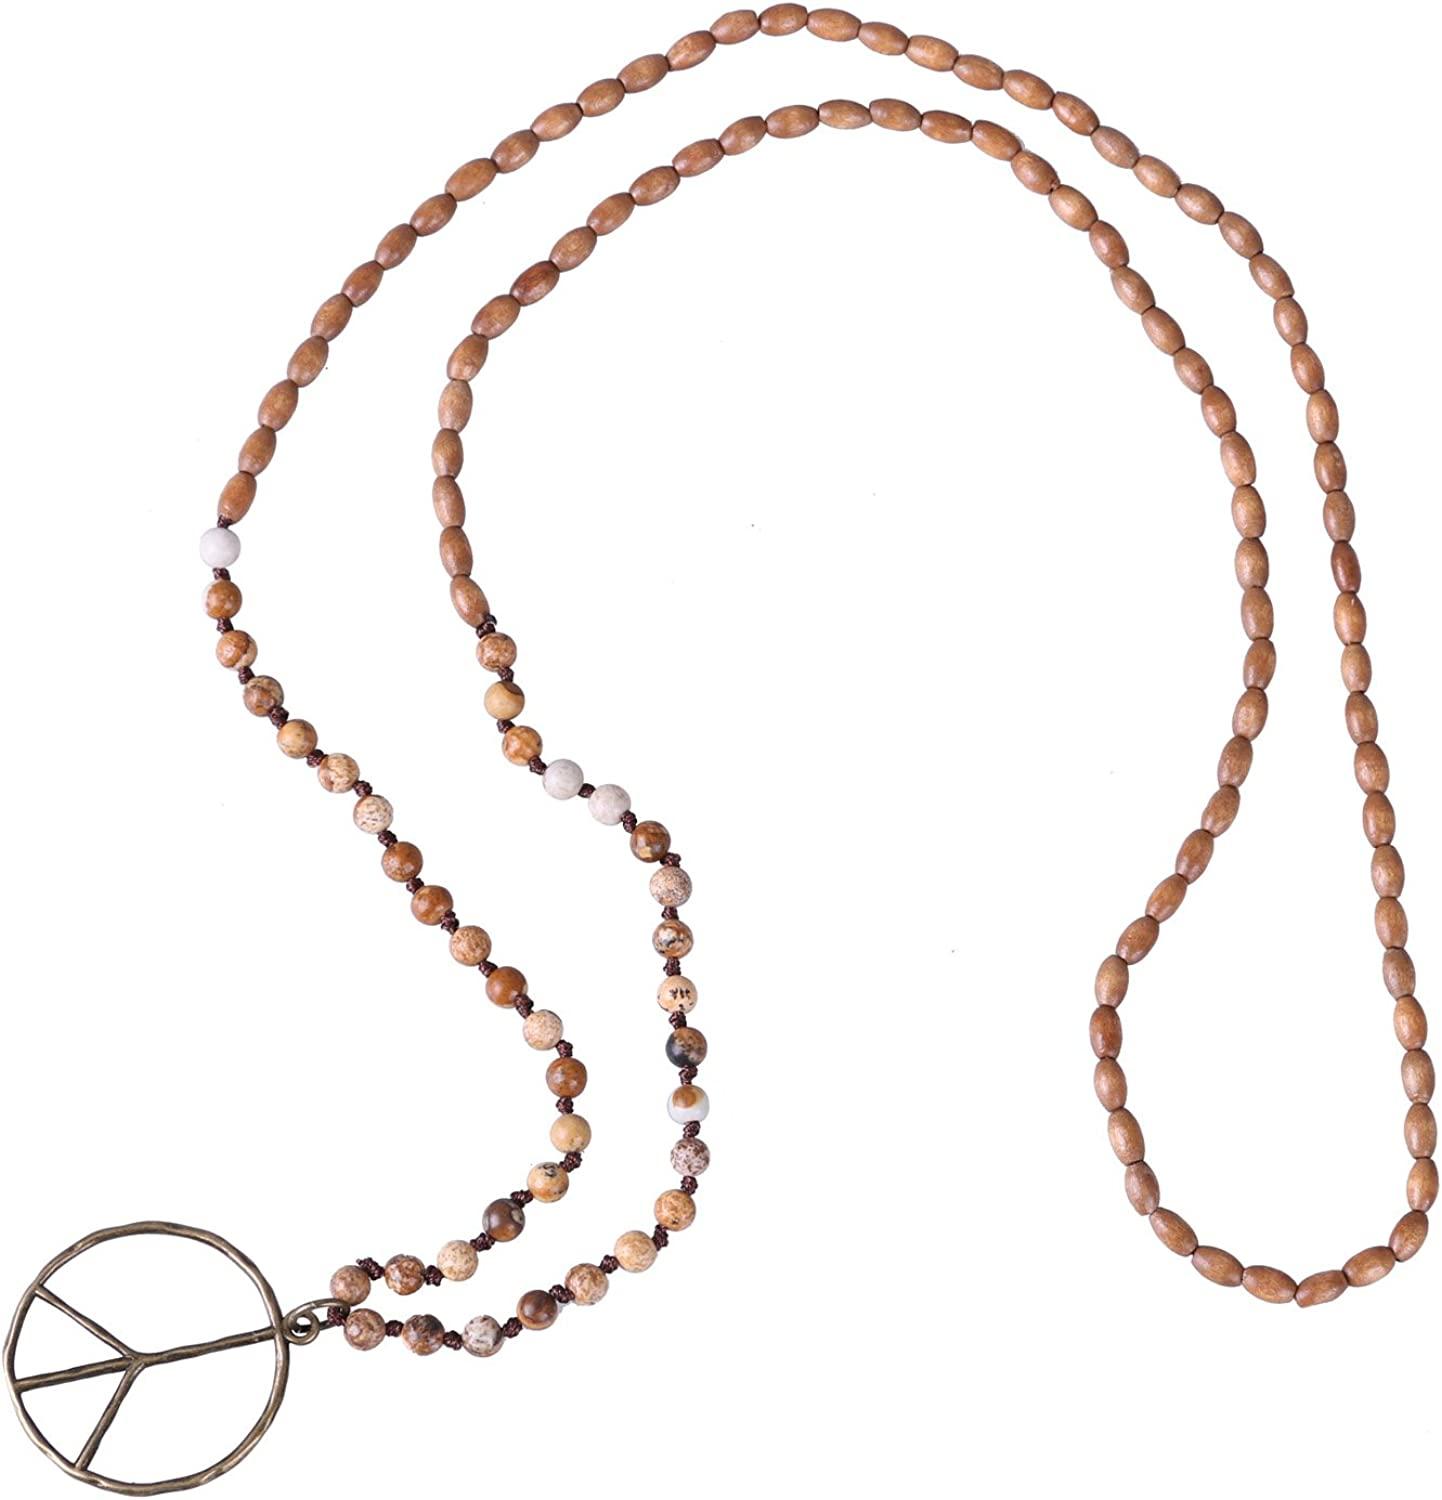 60s , 70s Hippie Clothes for Men KELITCH Peace Sign Necklace for Women Hand Knotted Crystal Beaded Pendant Necklace  AT vintagedancer.com